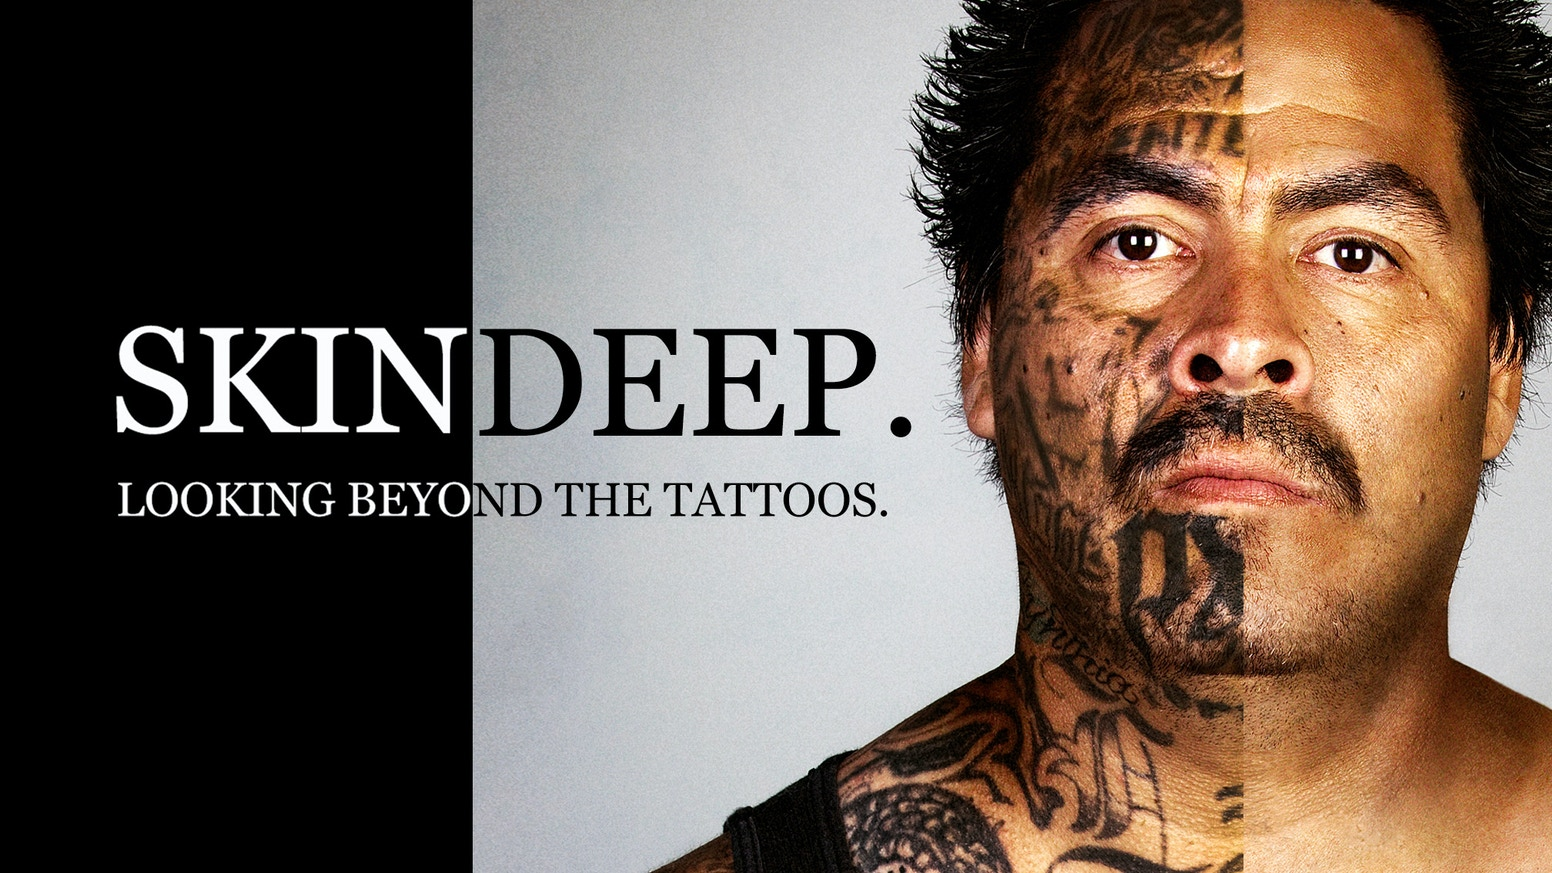 cd1187da9b35e Skin deep, ex-gang members looking beyond the tattoos by Steven ...